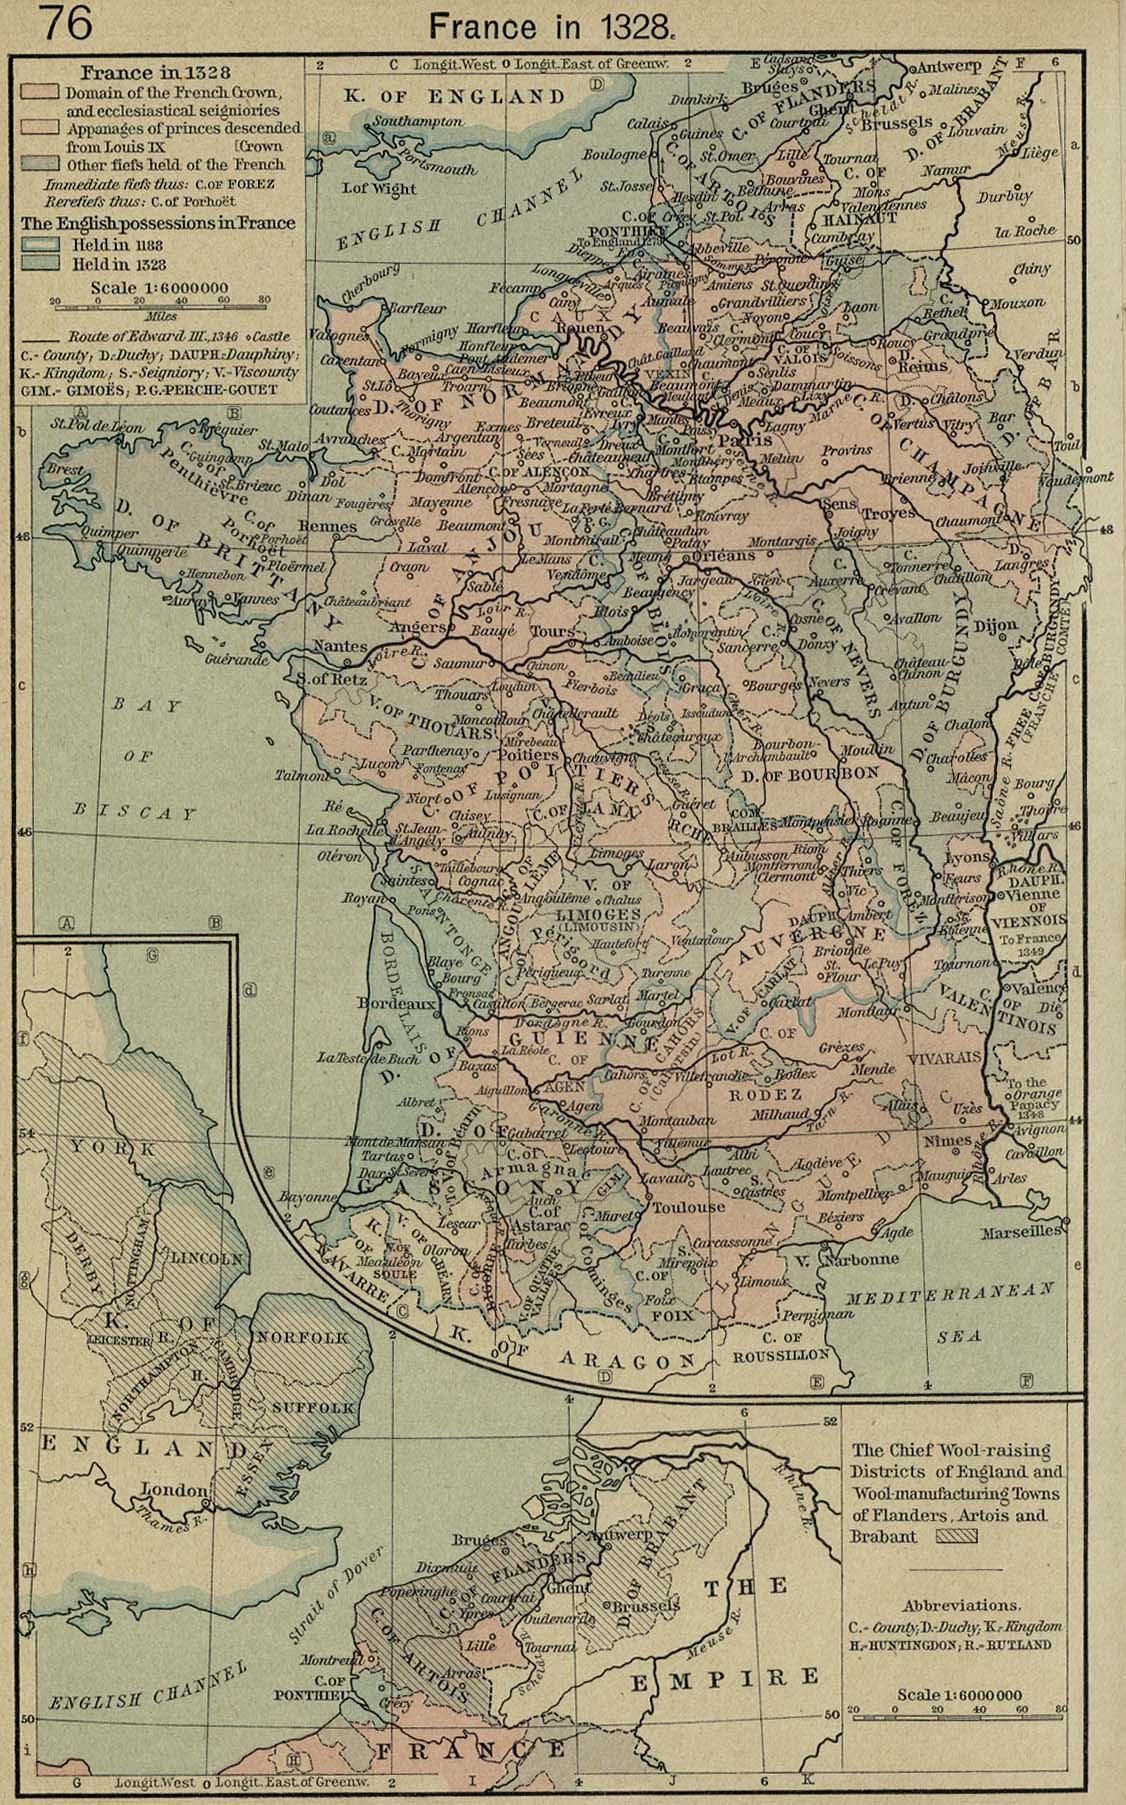 Map of France 1328